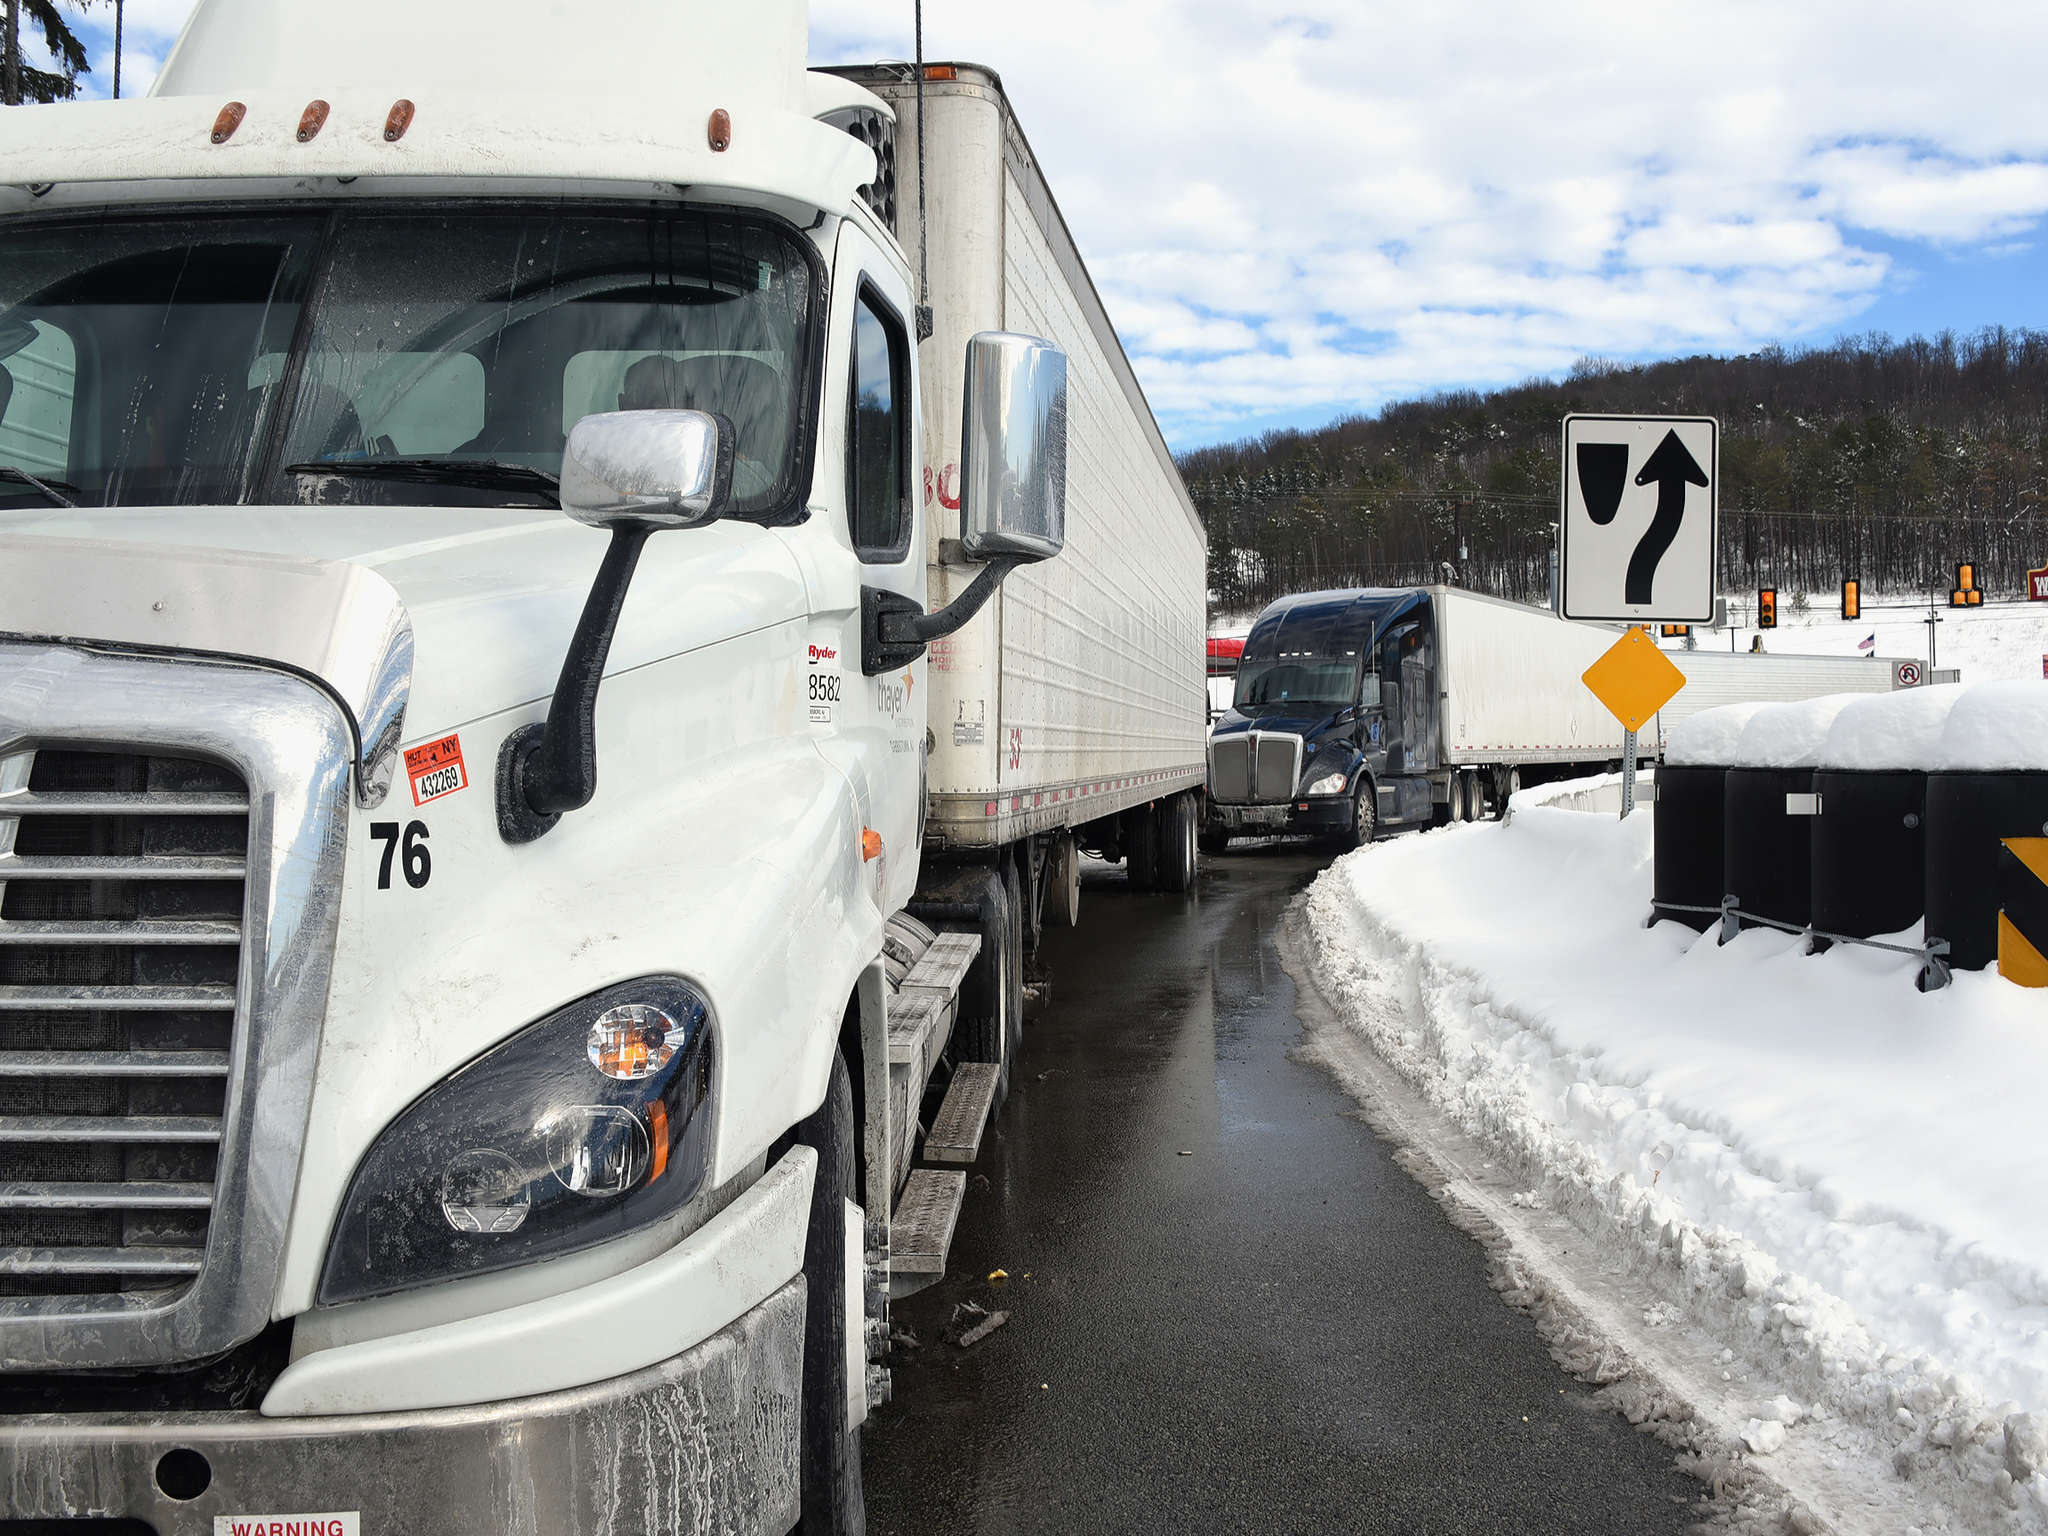 Lining up at the Pennsylvania Turnpike. With U.S. roads, rails, bridges, and more needing work, candidates Donald Trump and Hillary Clinton are promising to invest big in infrastructure.